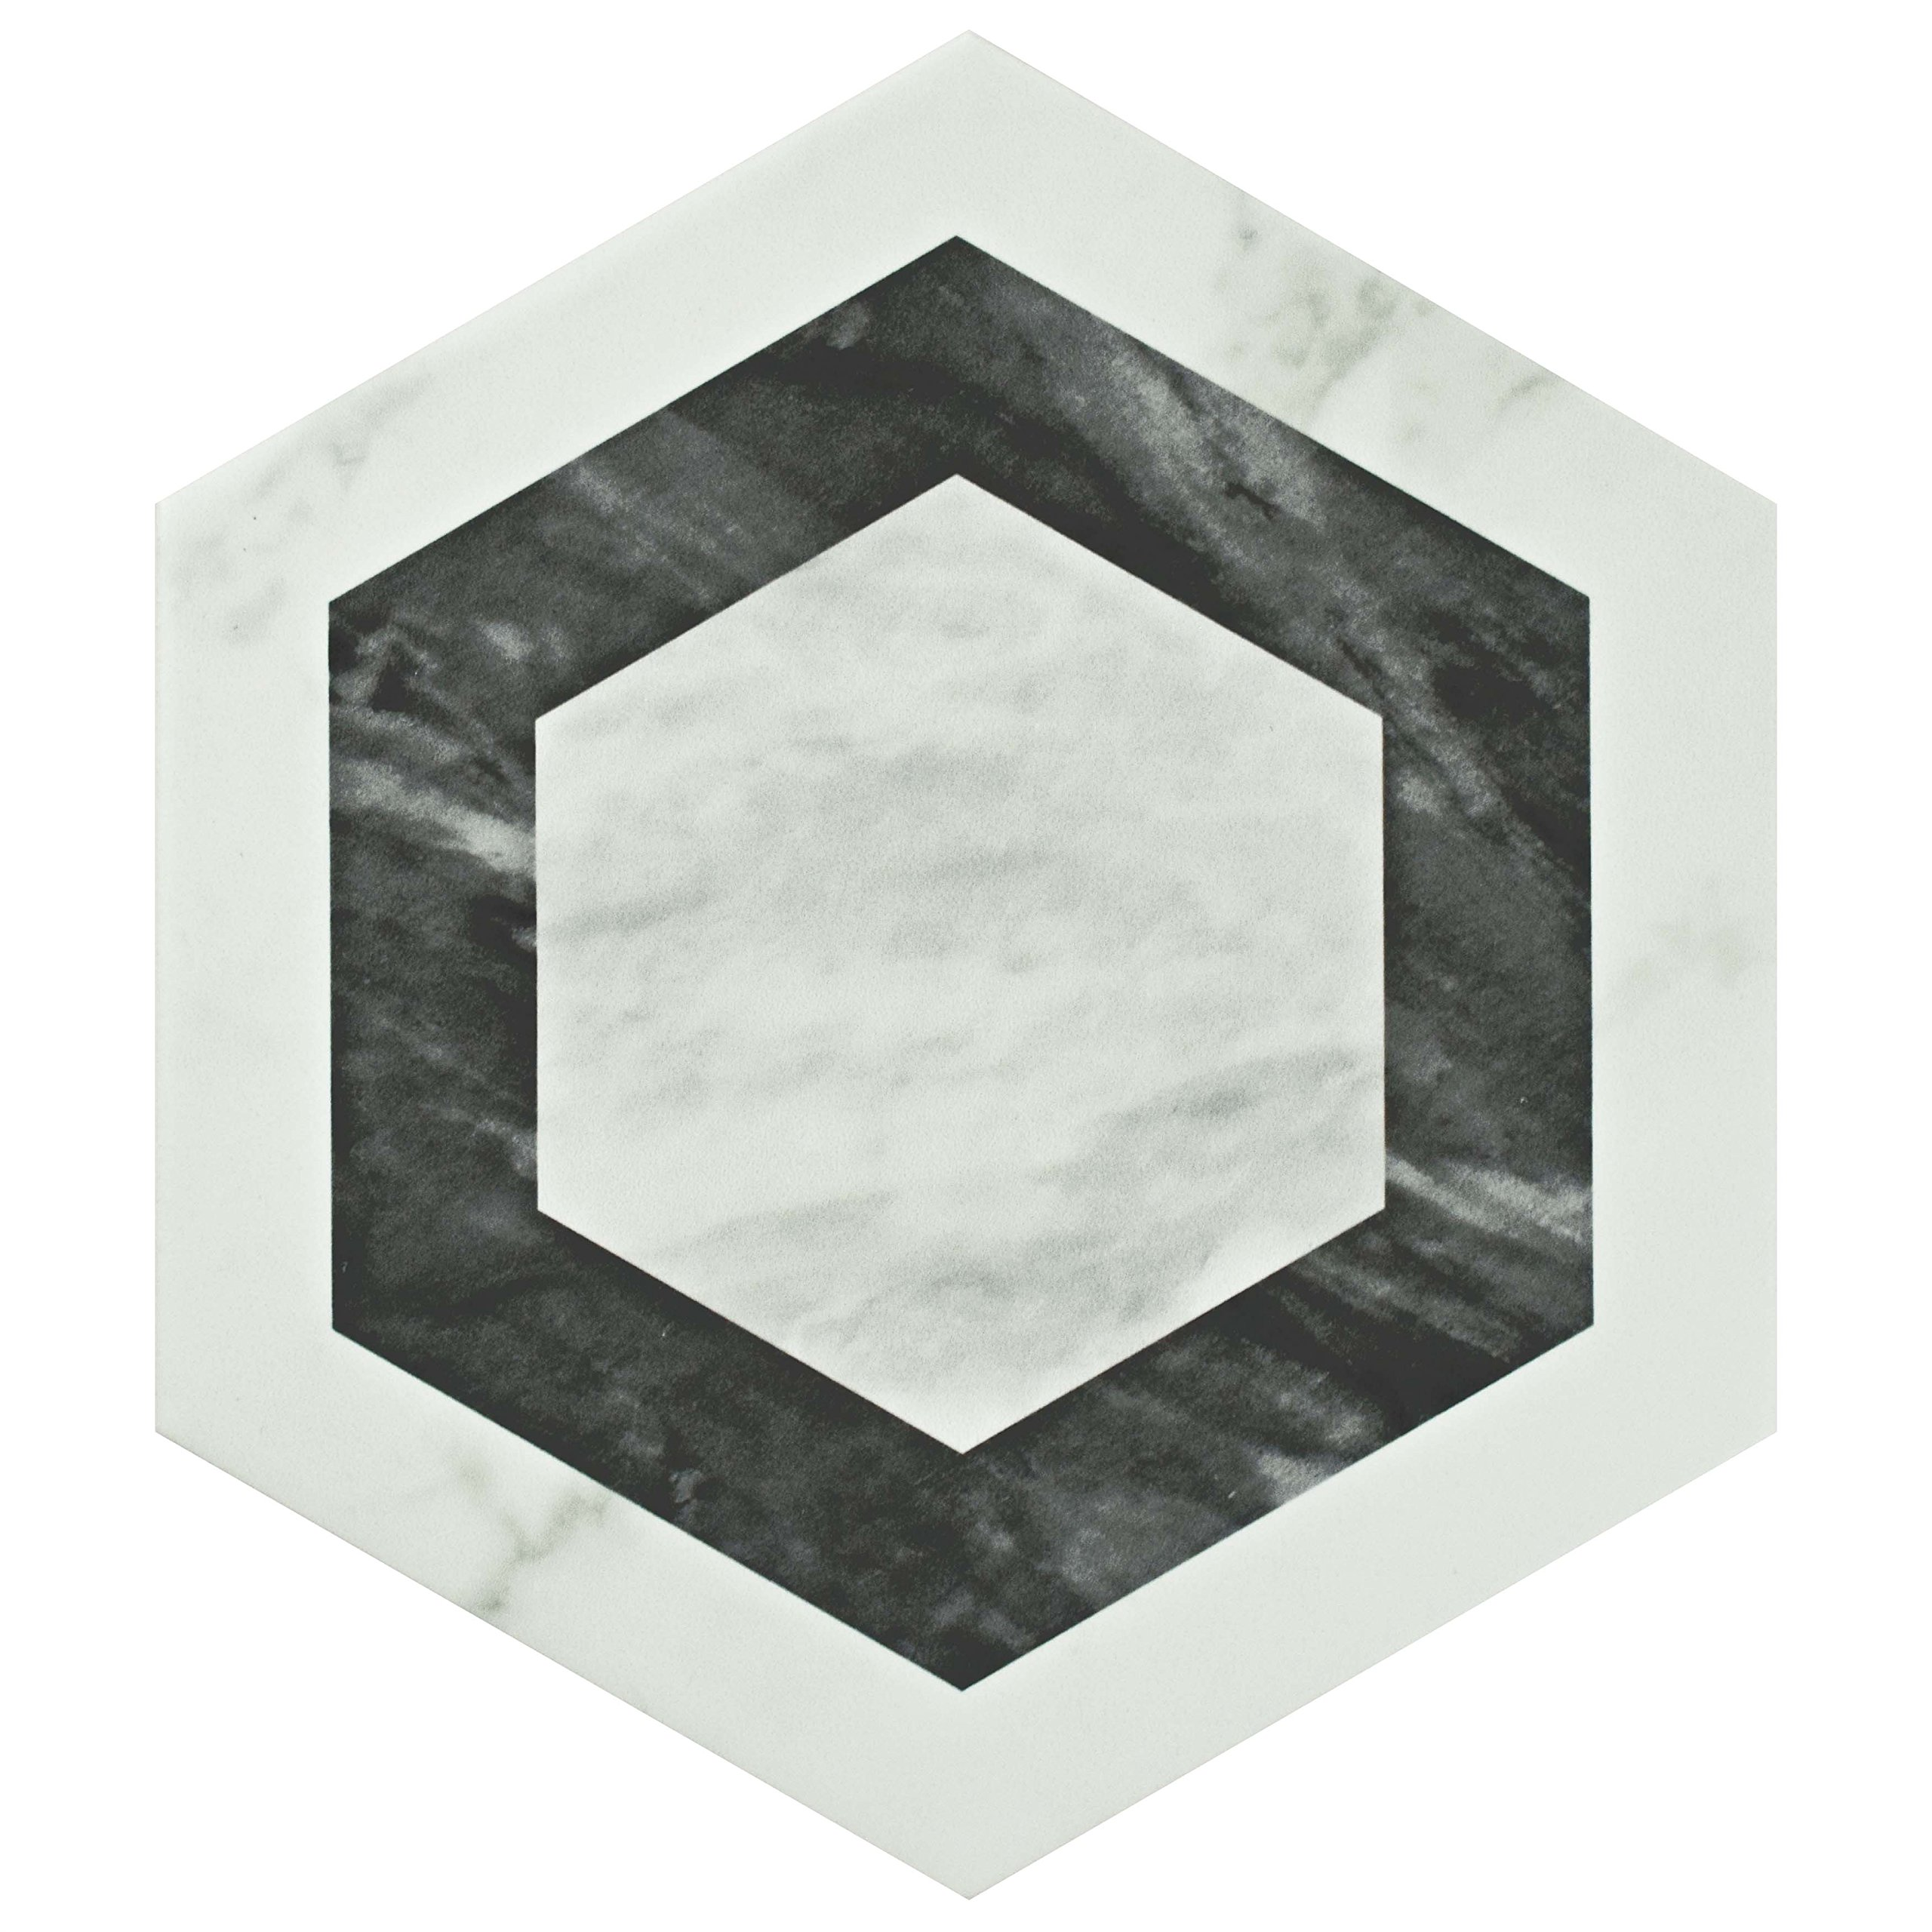 SomerTile FEQ8BXG Murmur Bardiglio Hexagon Porcelain Floor and Wall Tile, 7'' x 8'', Geo by SOMERTILE (Image #2)